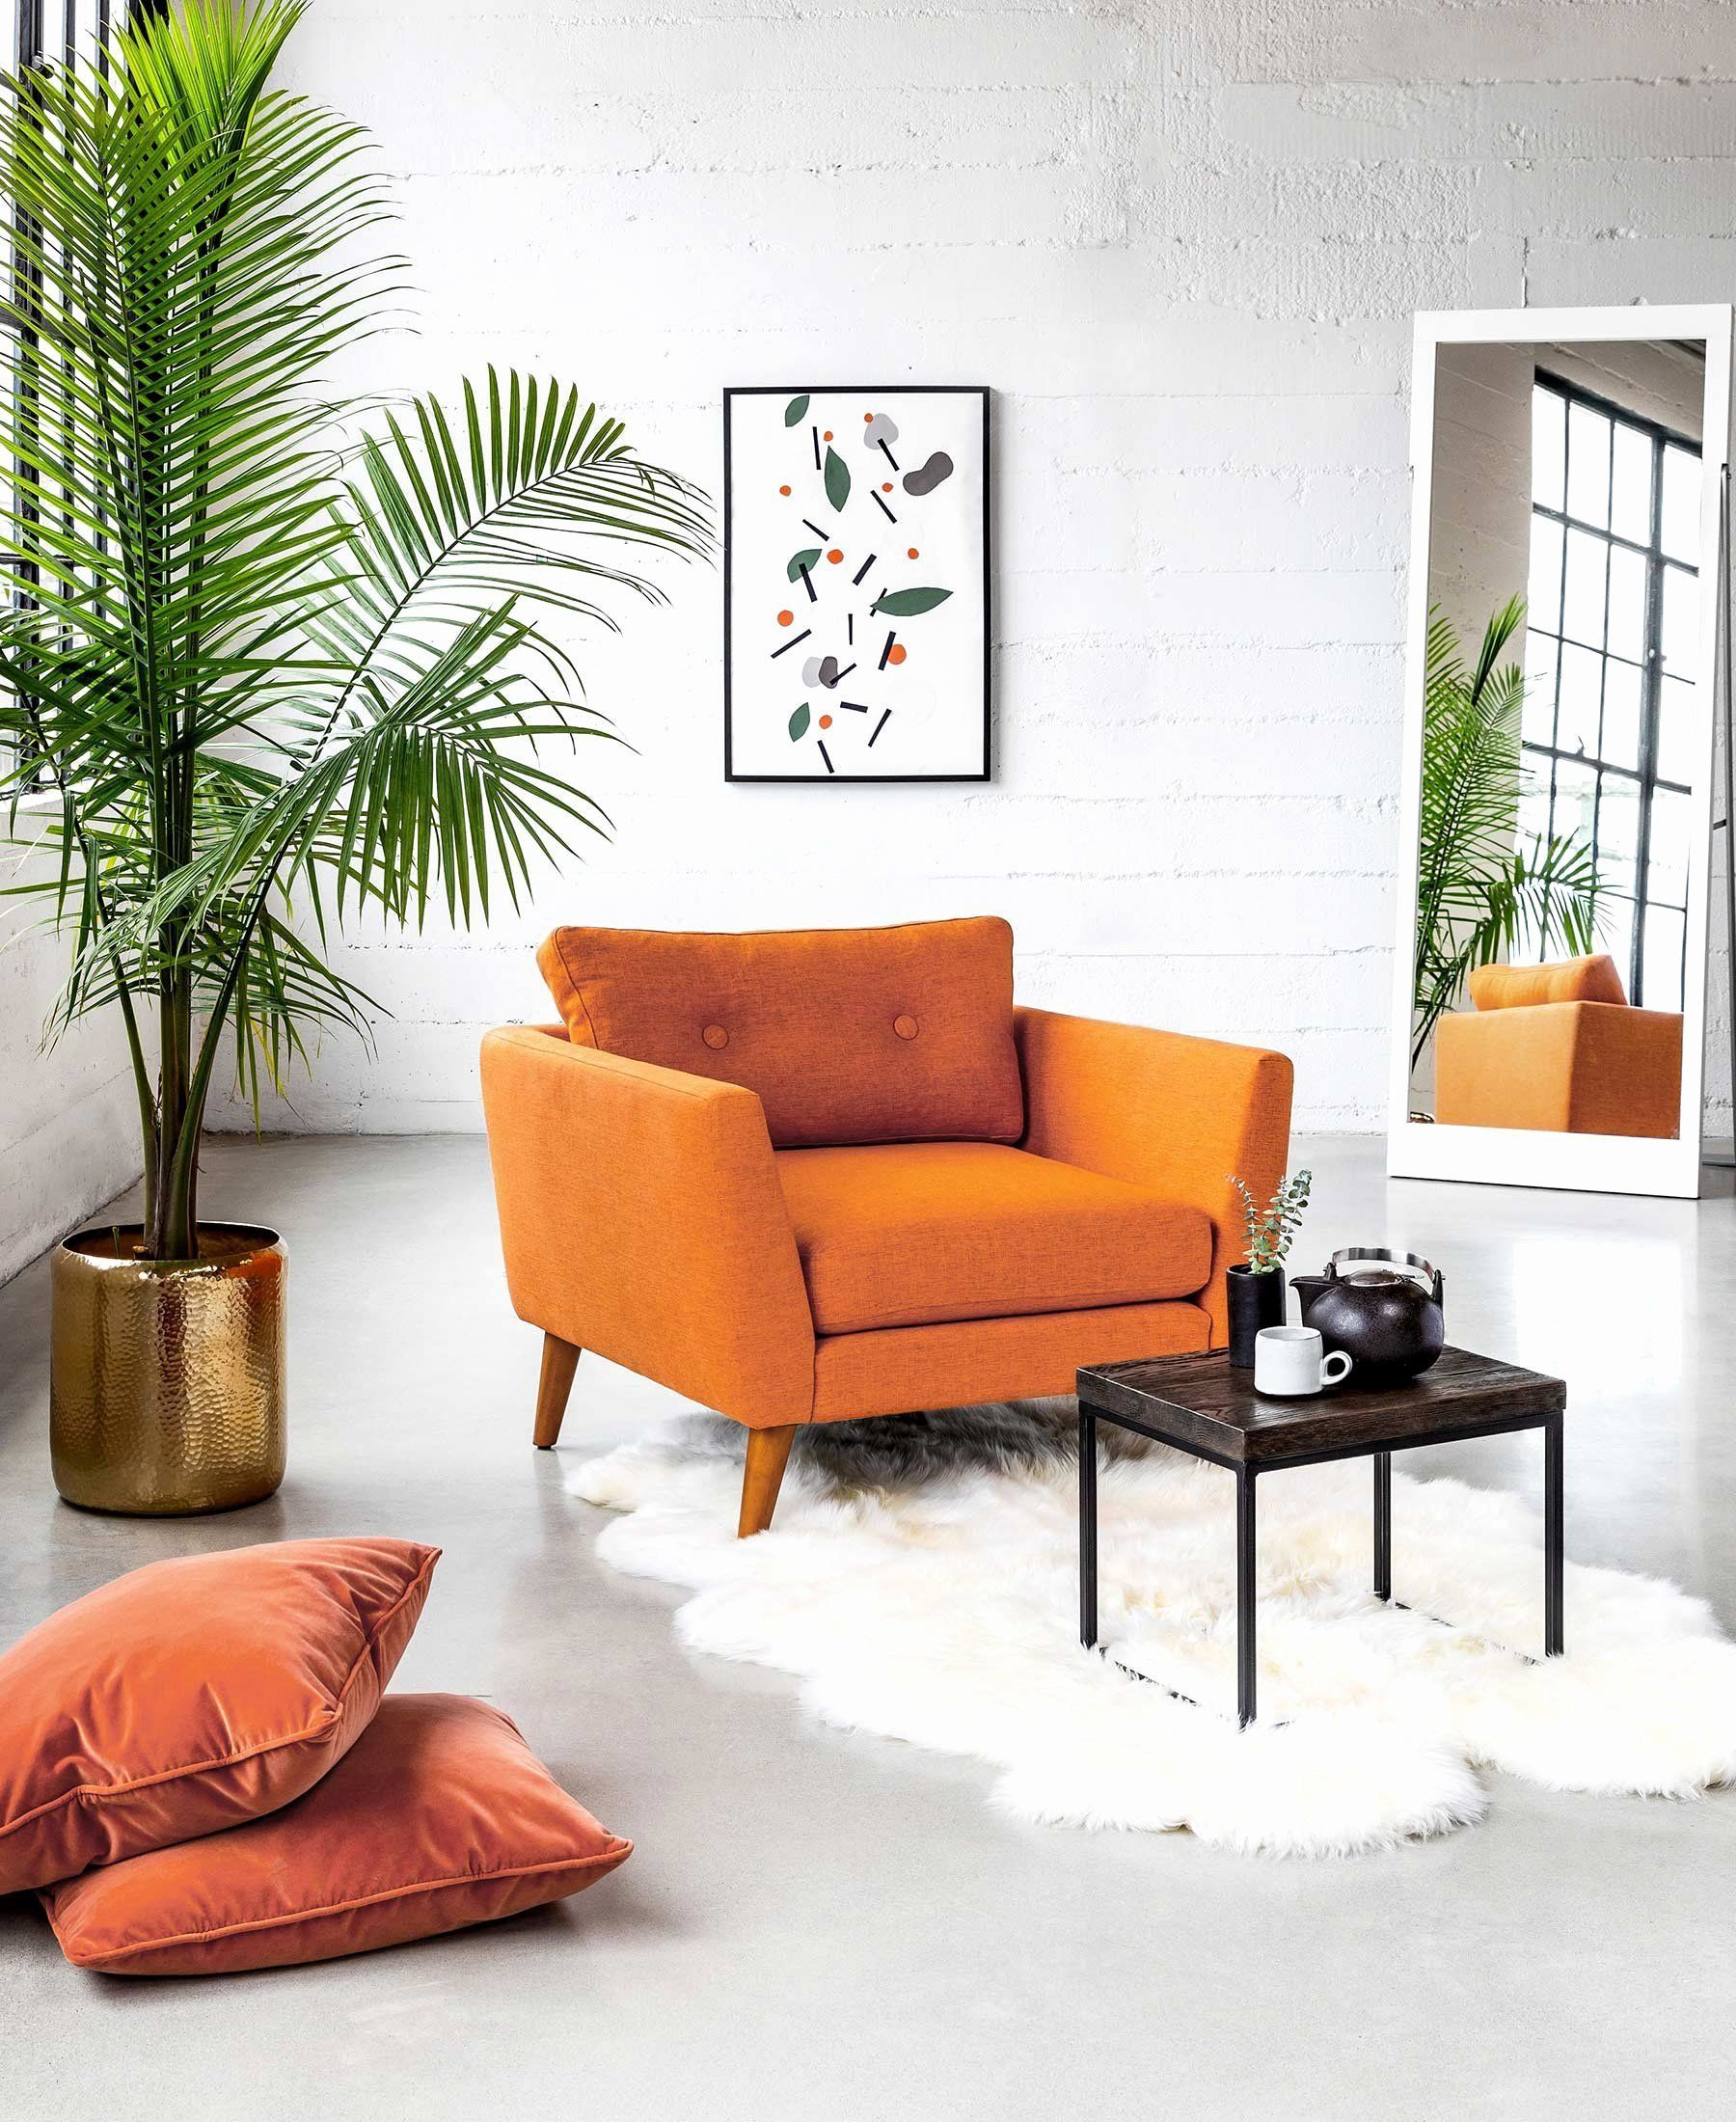 Living Room Seating Ideas Without Sofa Best Of Simple Living Room Id In 2020 Simple Living Room Decor Simple Living Room Designs Living Room Seating Ideas Without Sofa